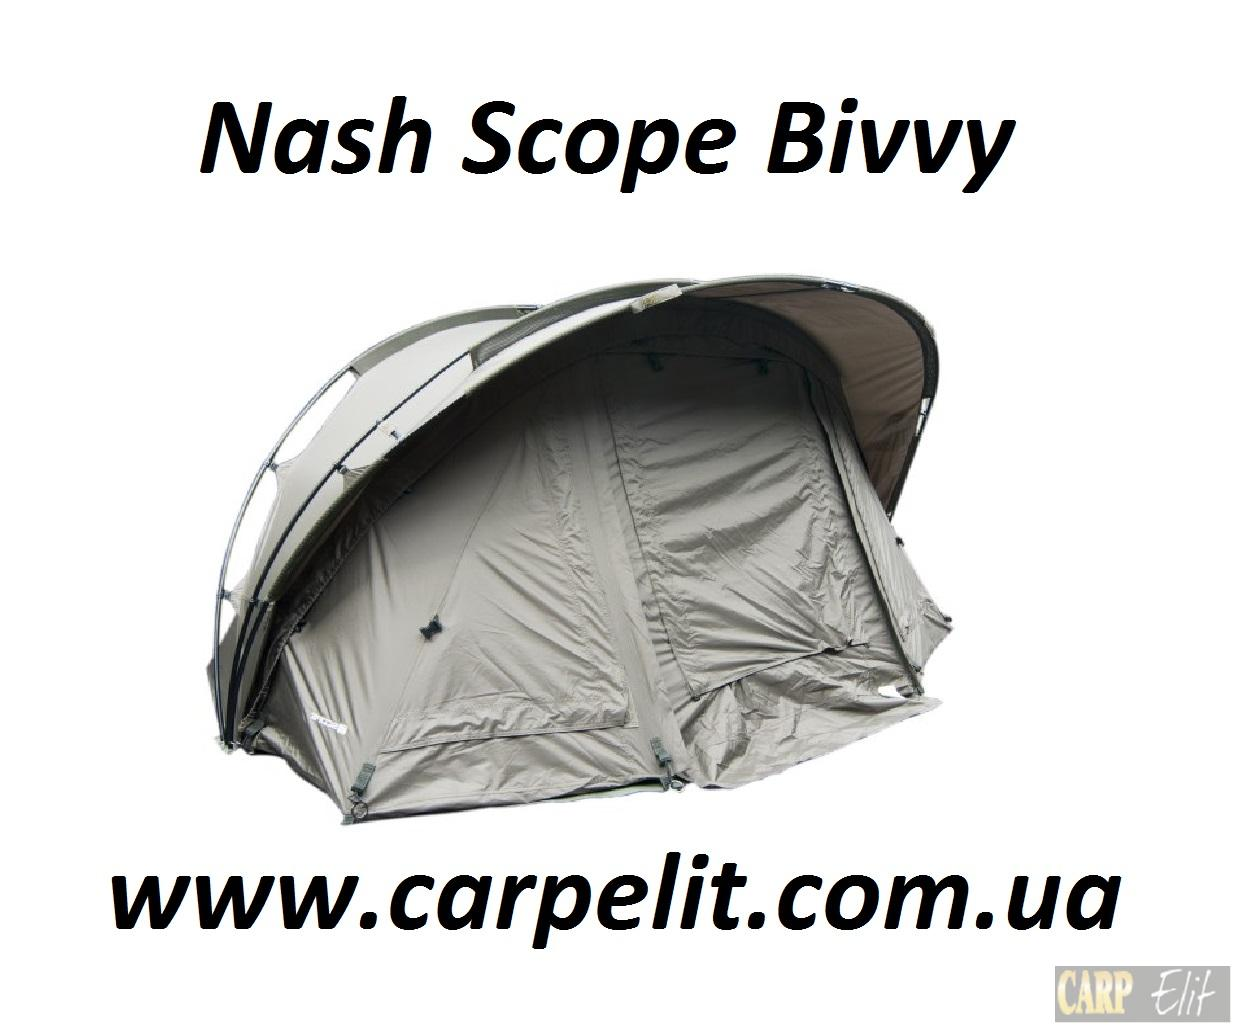 Nash Scope Bivvy